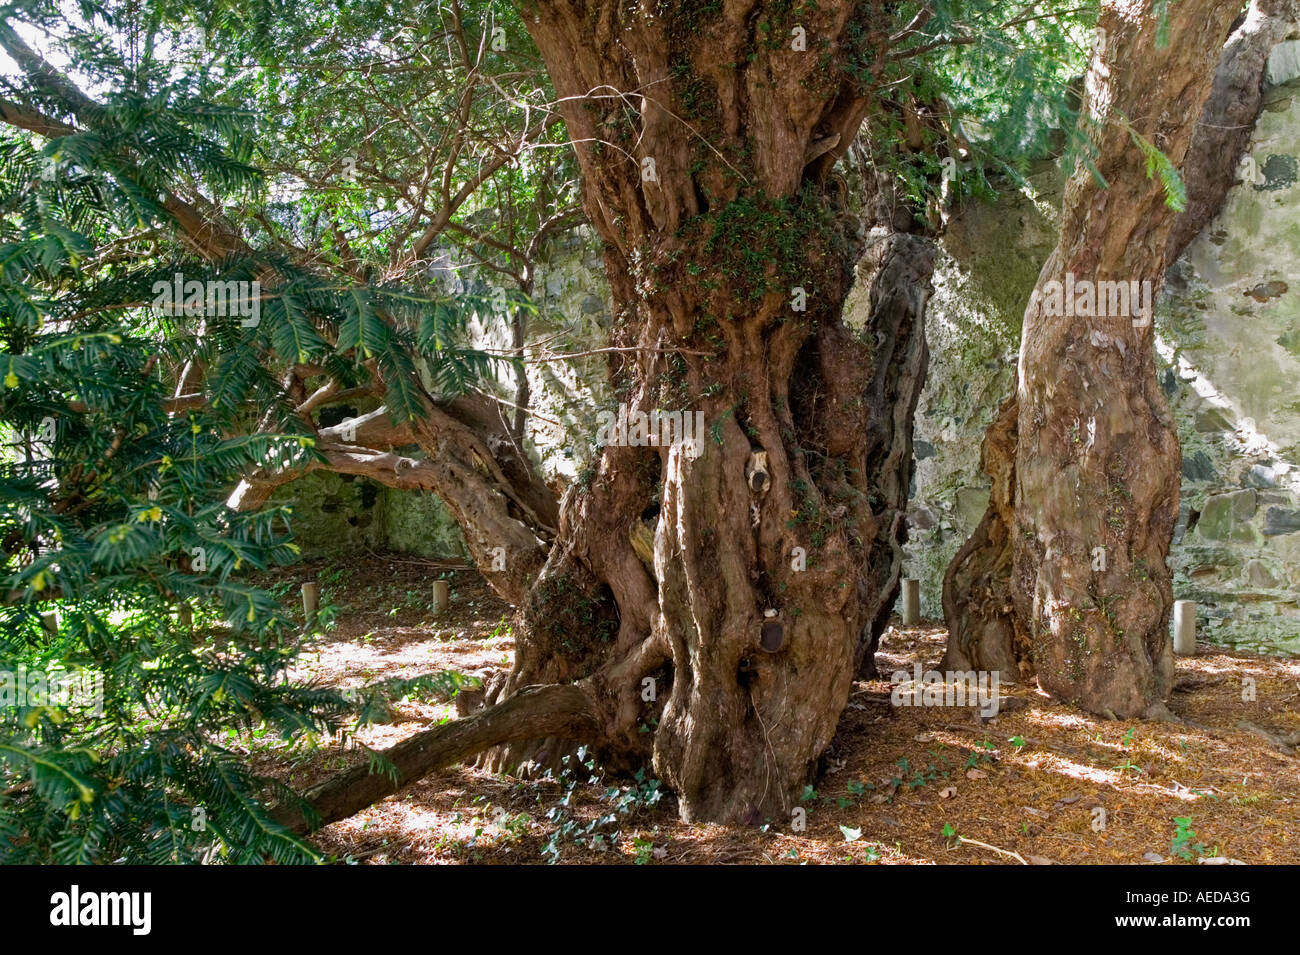 Part of one of the oldest ancient trees in the world the Fortingall Yew more than 4000 years - Stock Image